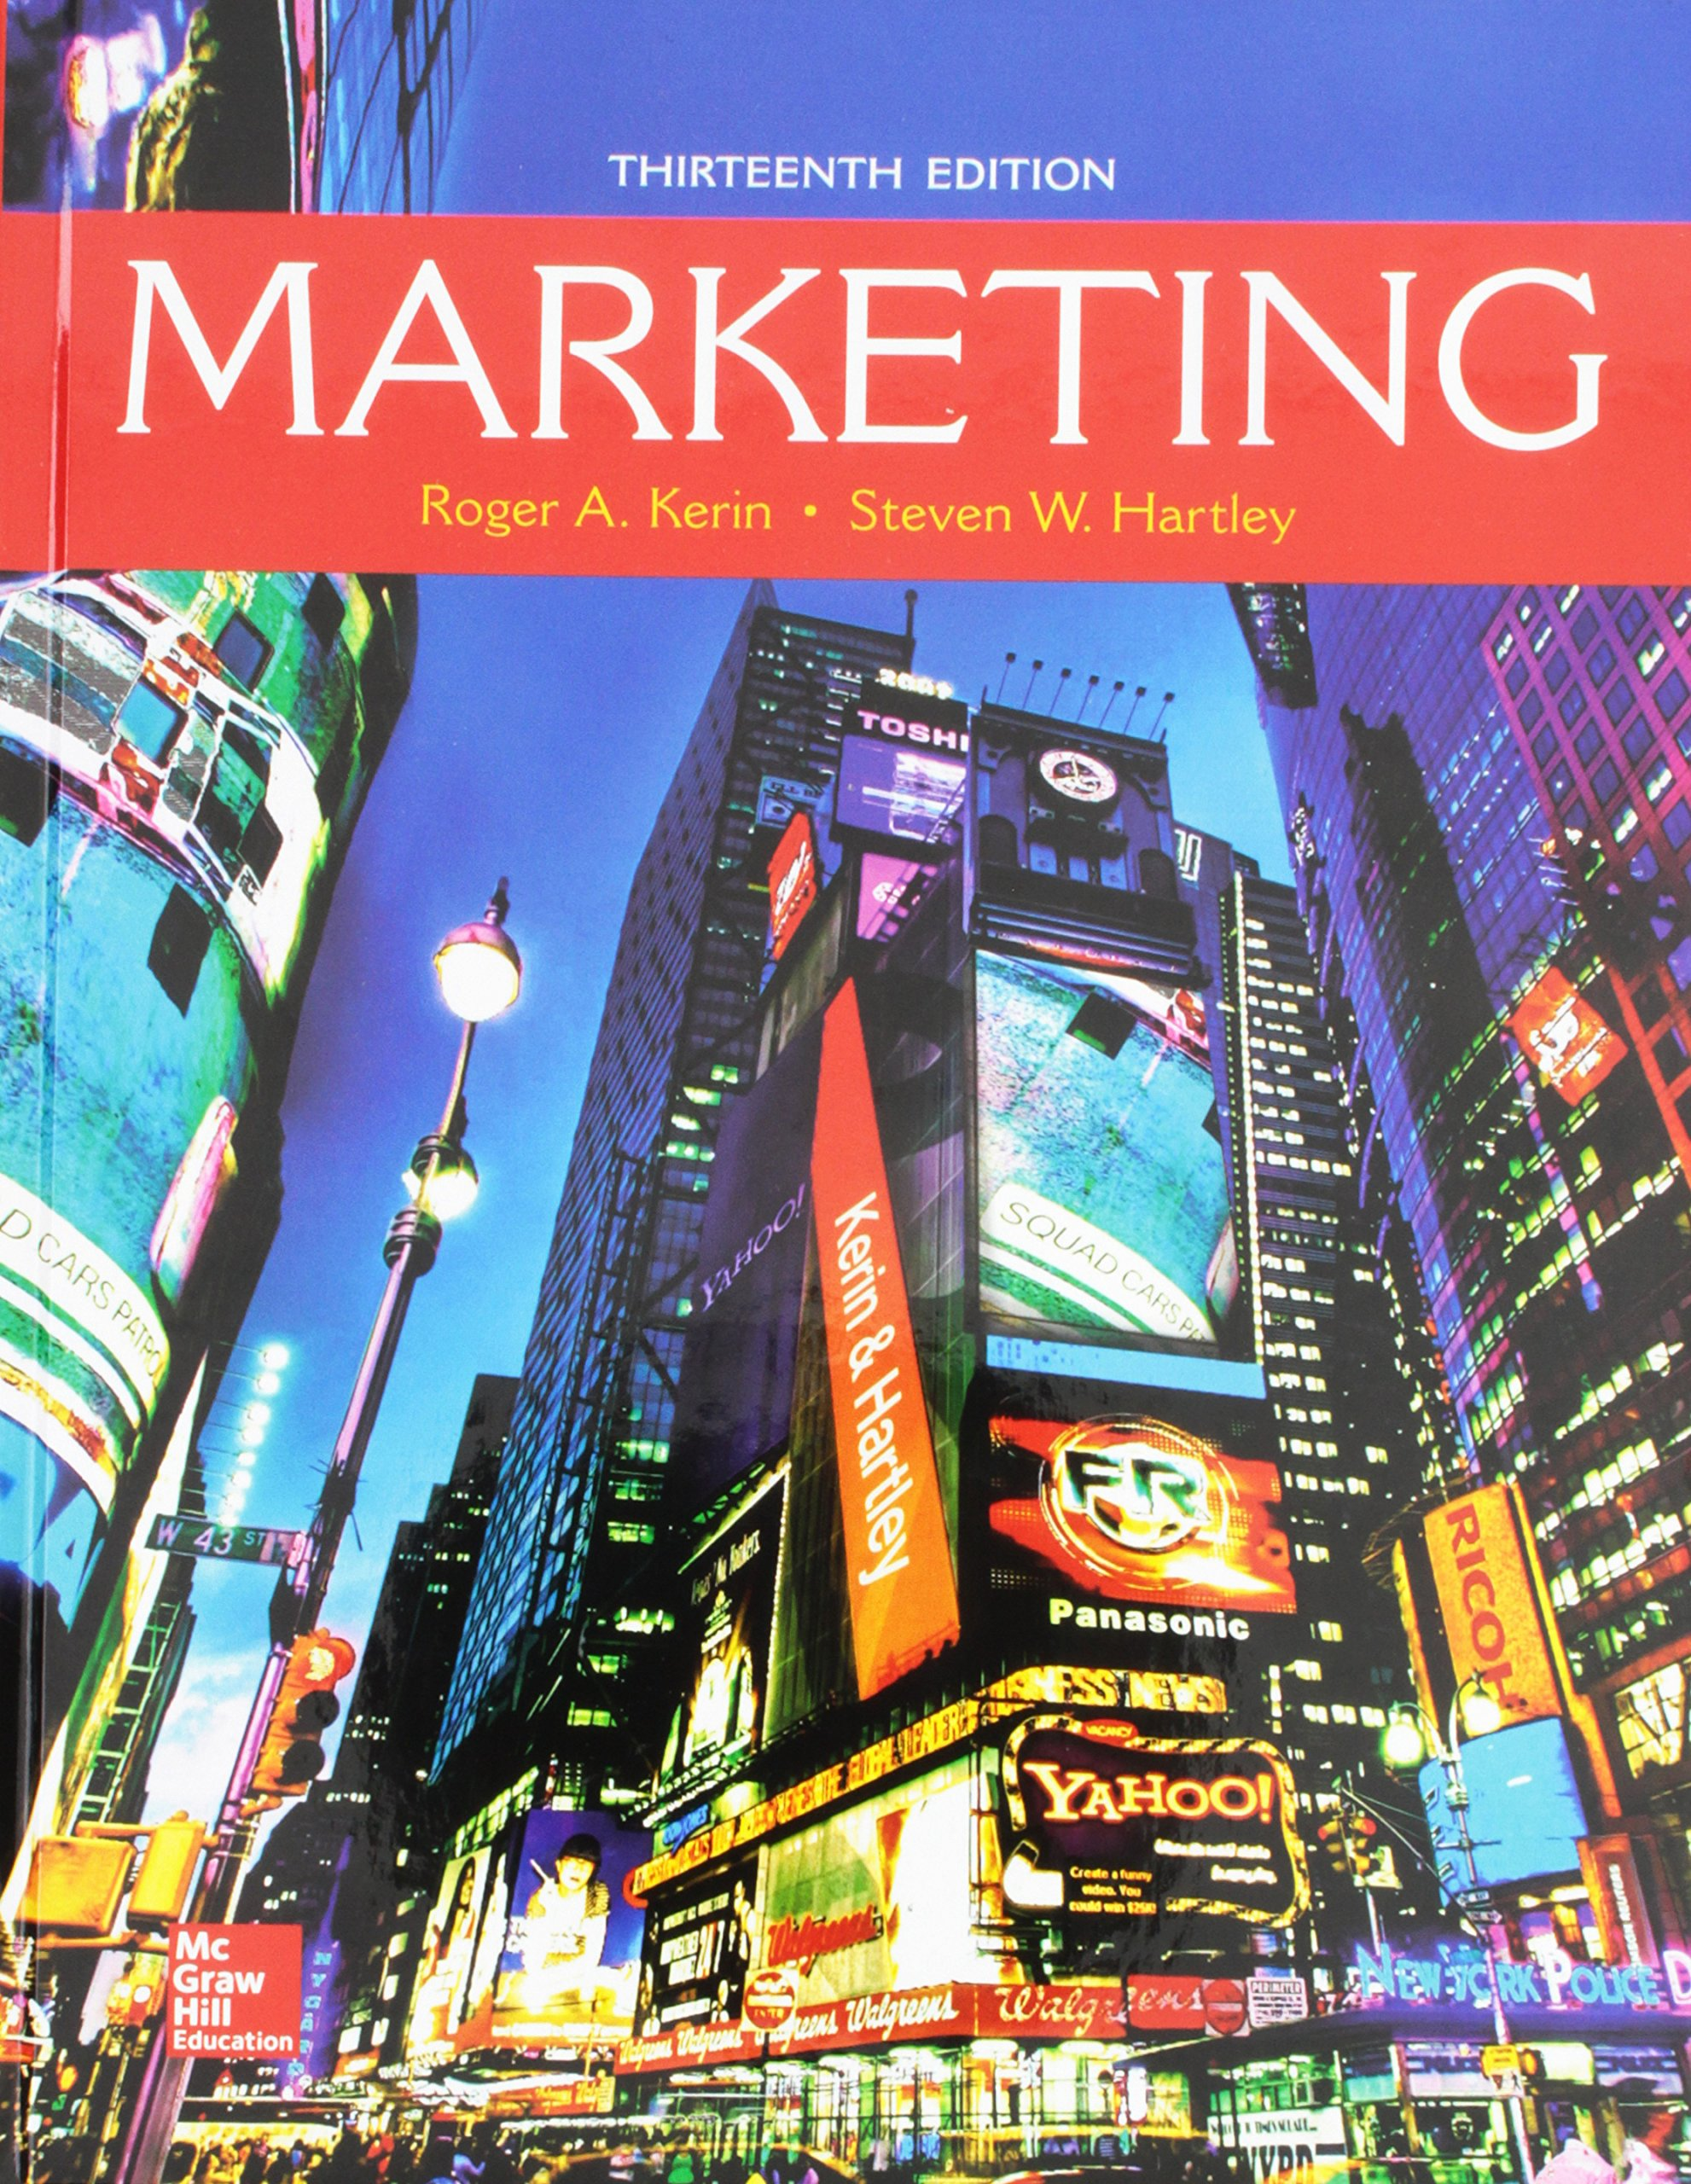 Marketing - Standalone book by McGraw-Hill Education